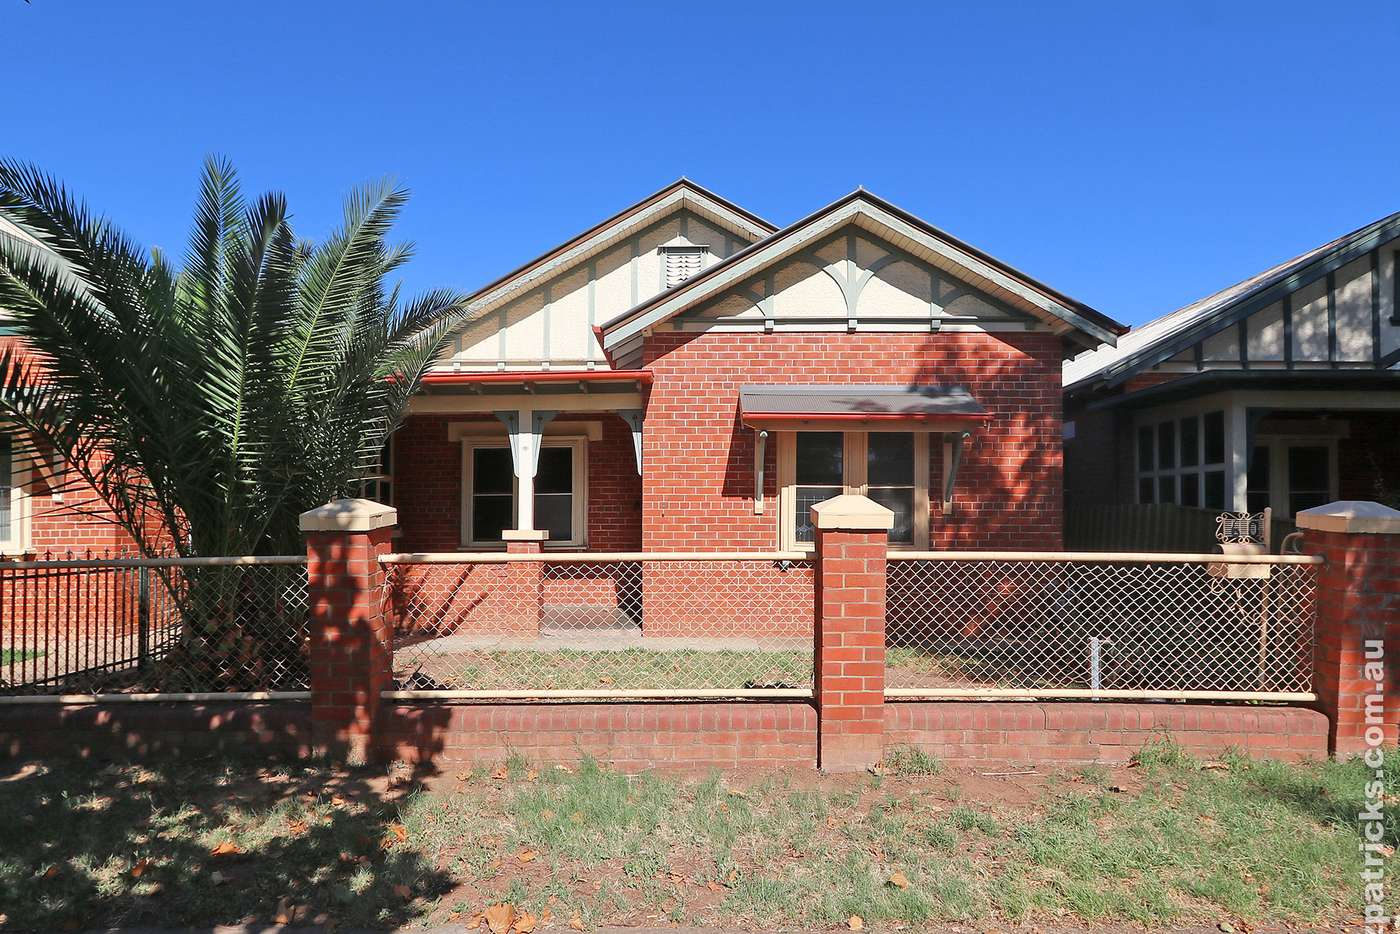 Main view of Homely house listing, 60 Peter Street, Wagga Wagga NSW 2650